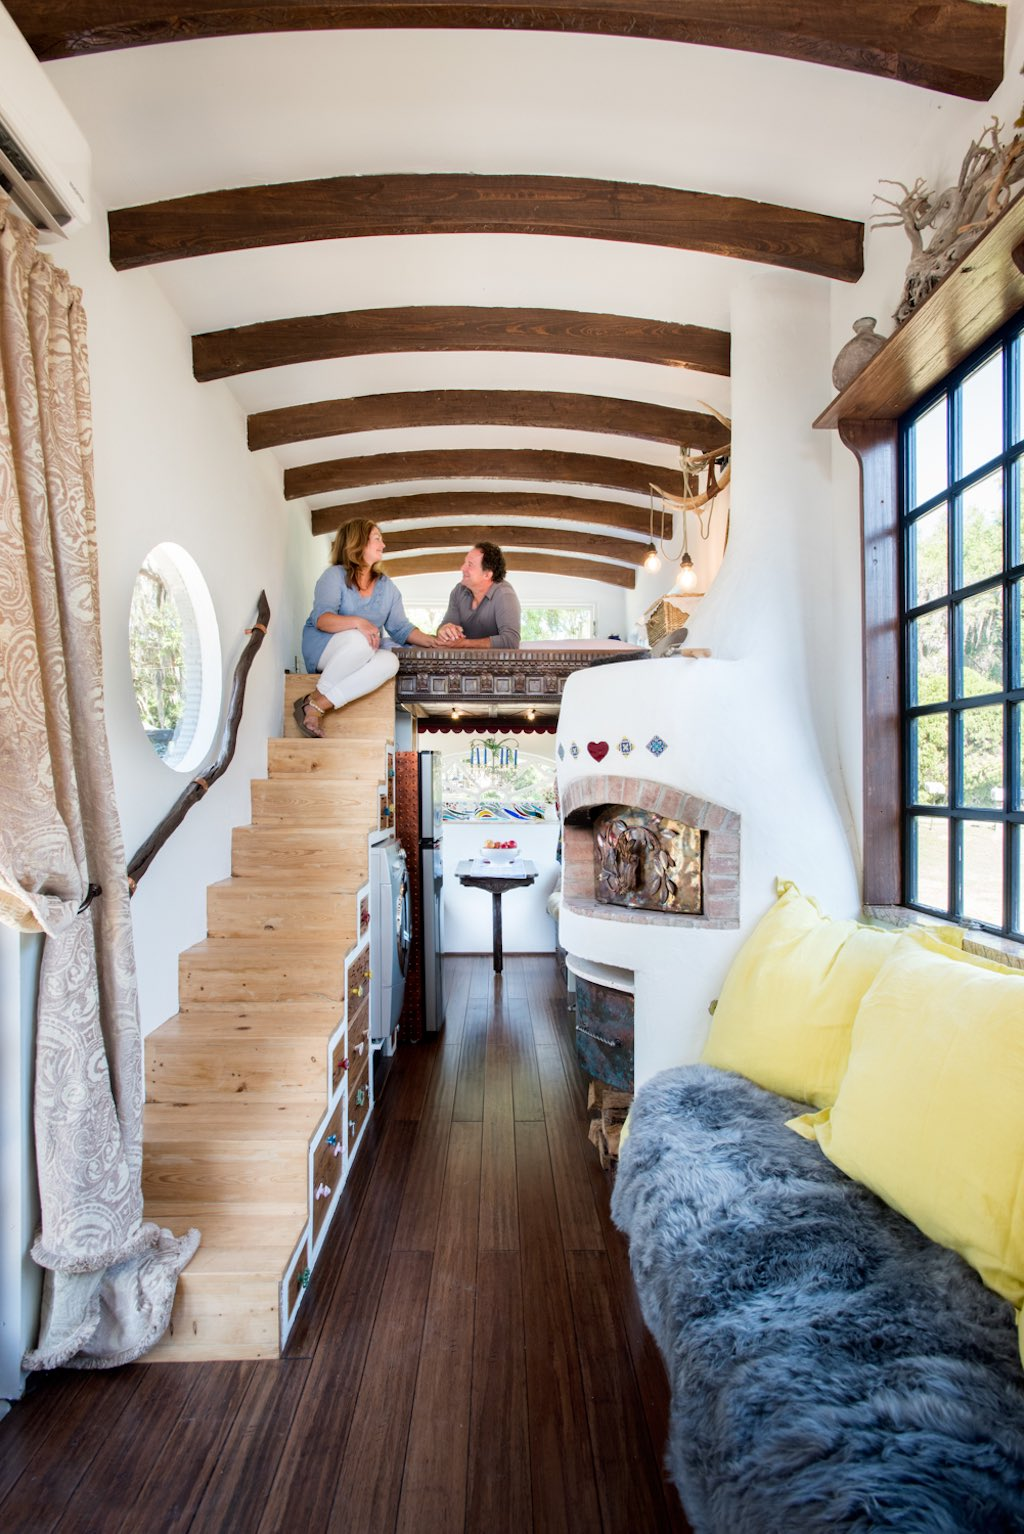 Incredible Tiny House Built for only $15k - Even Has Pizza Oven!